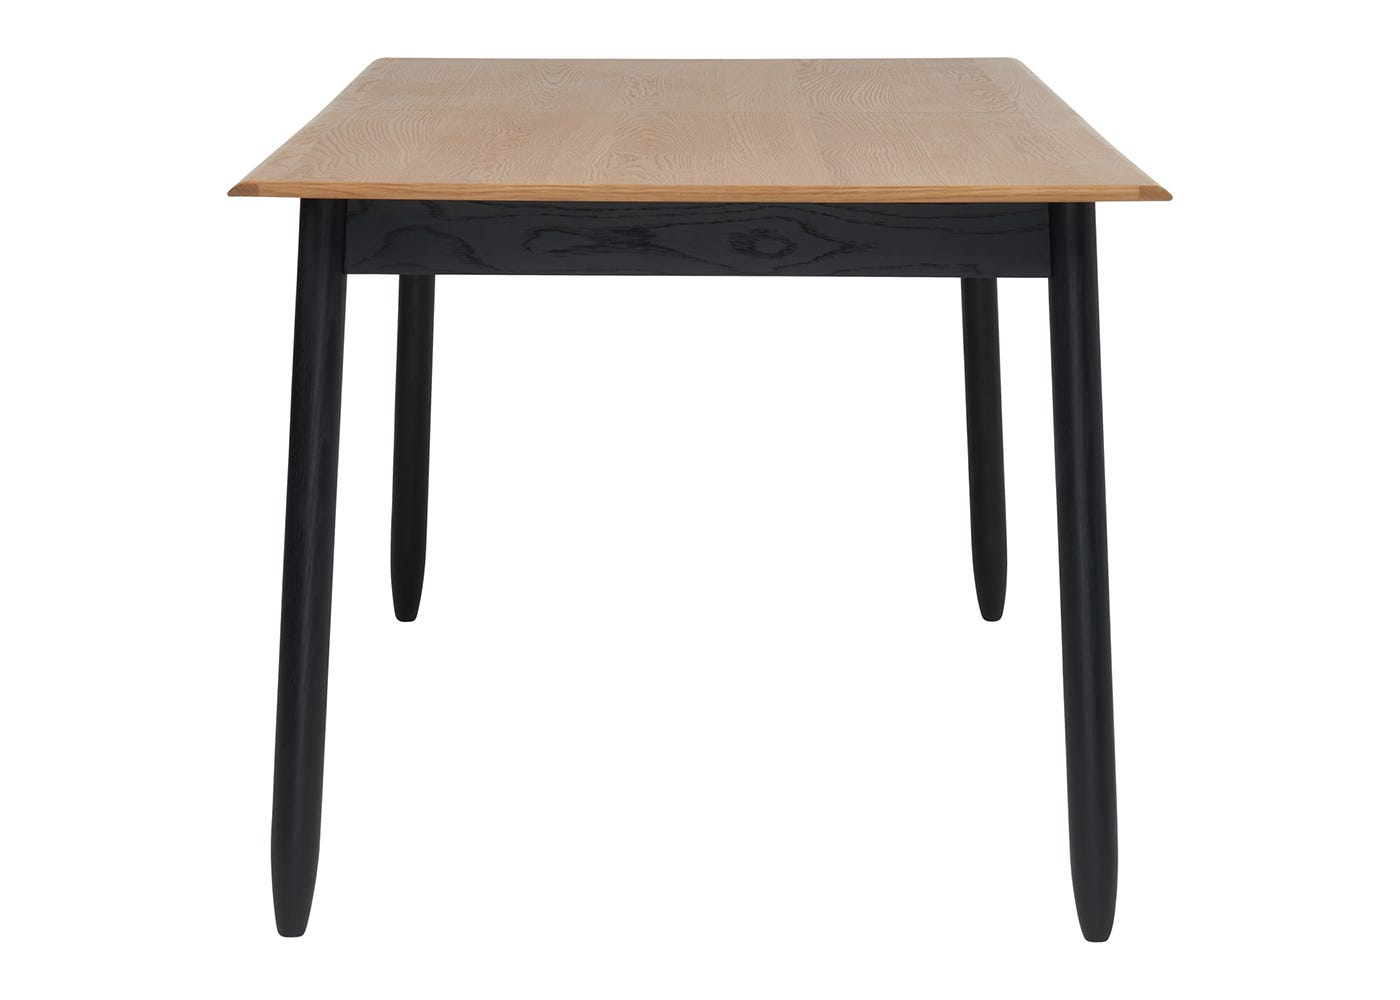 Monza Dining Table - End View - Not Extended